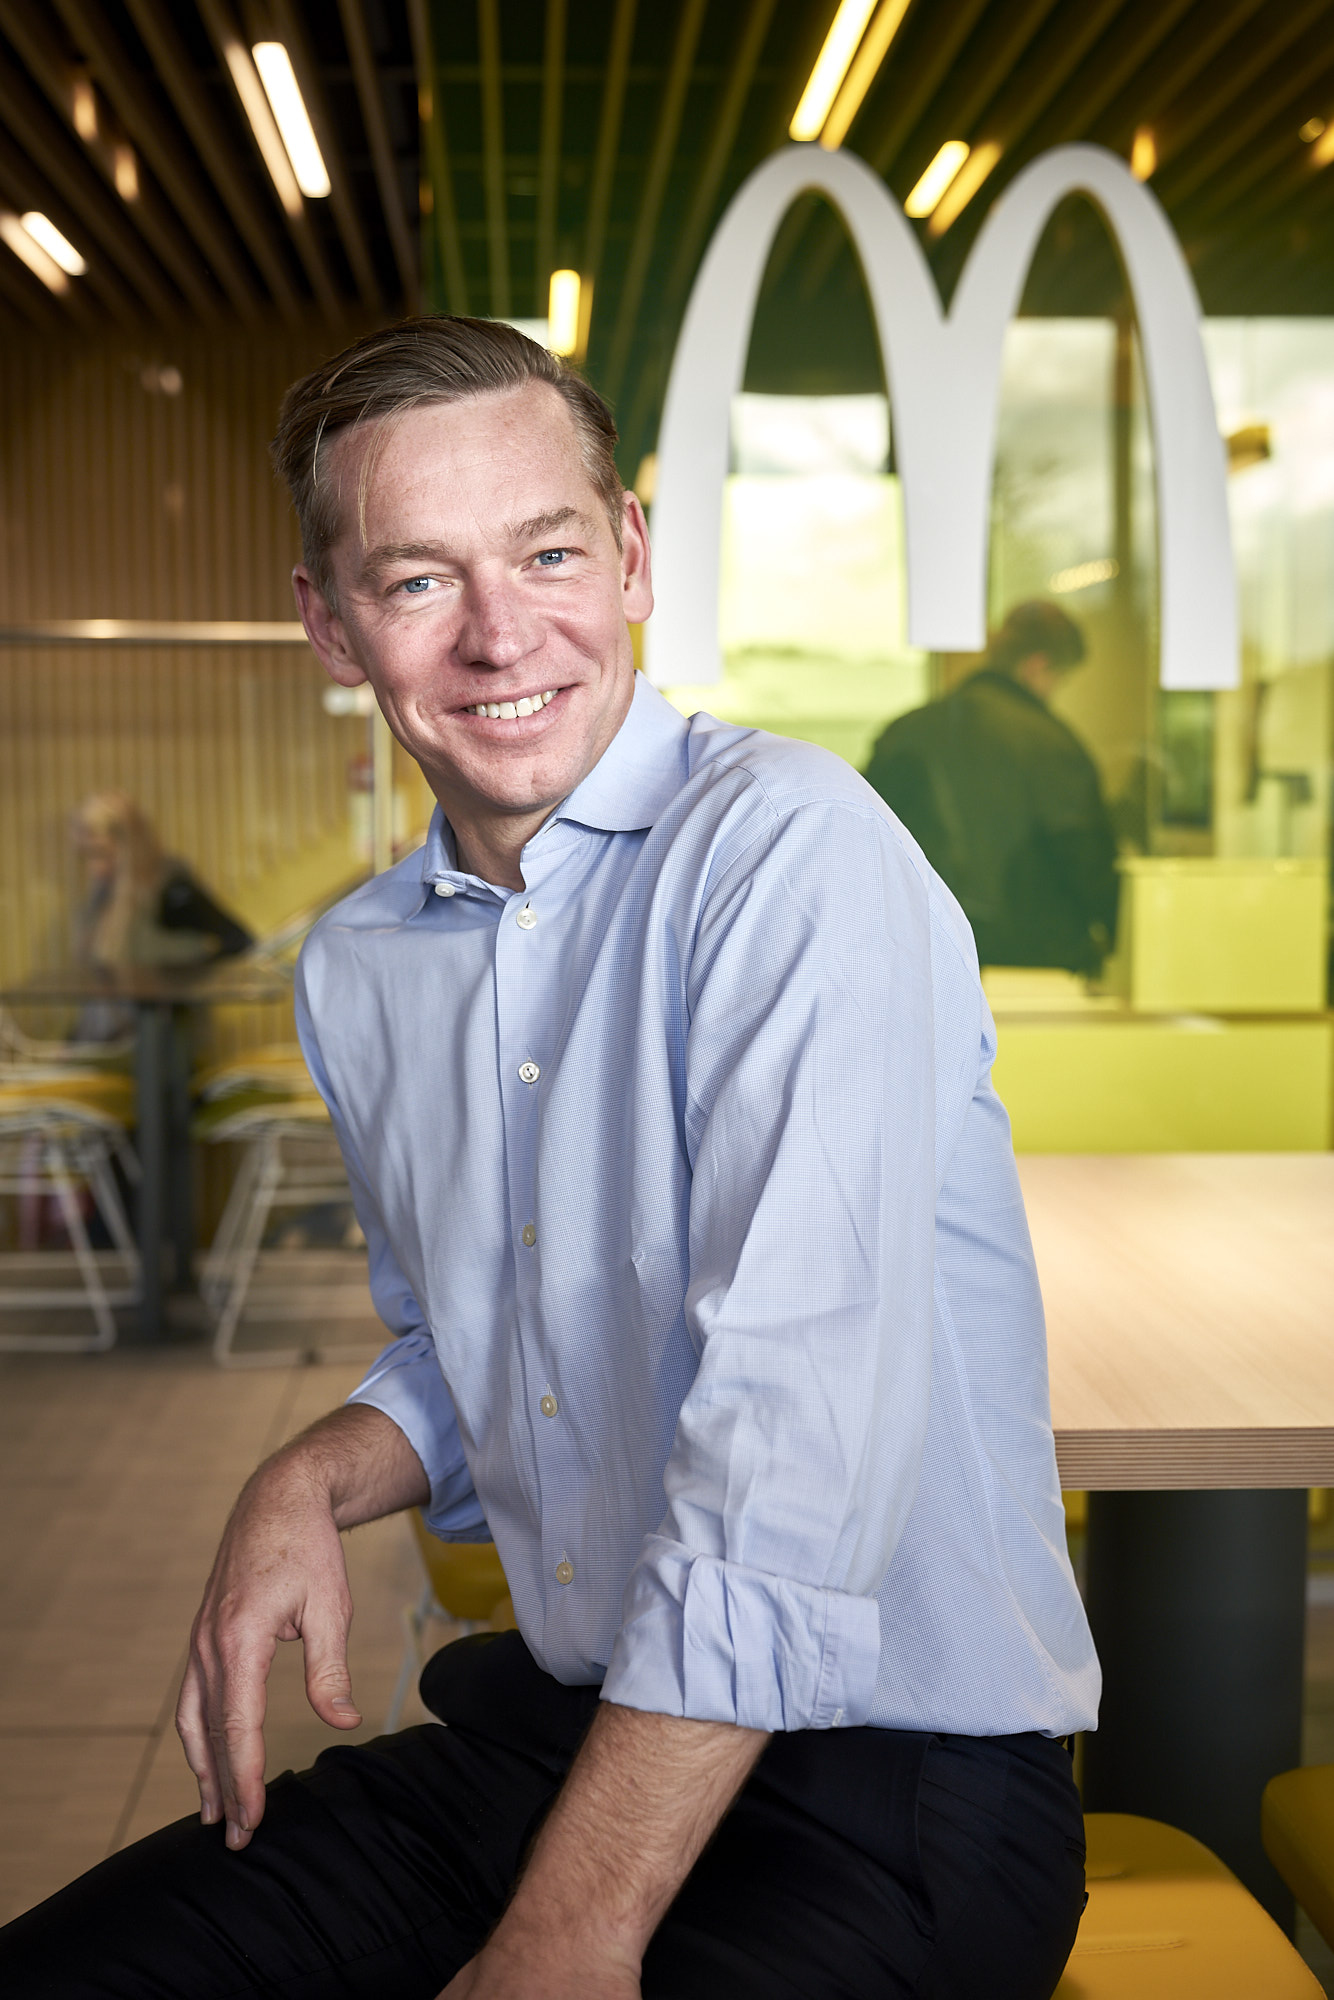 Chris Kempczinski, CEO of McDonald's